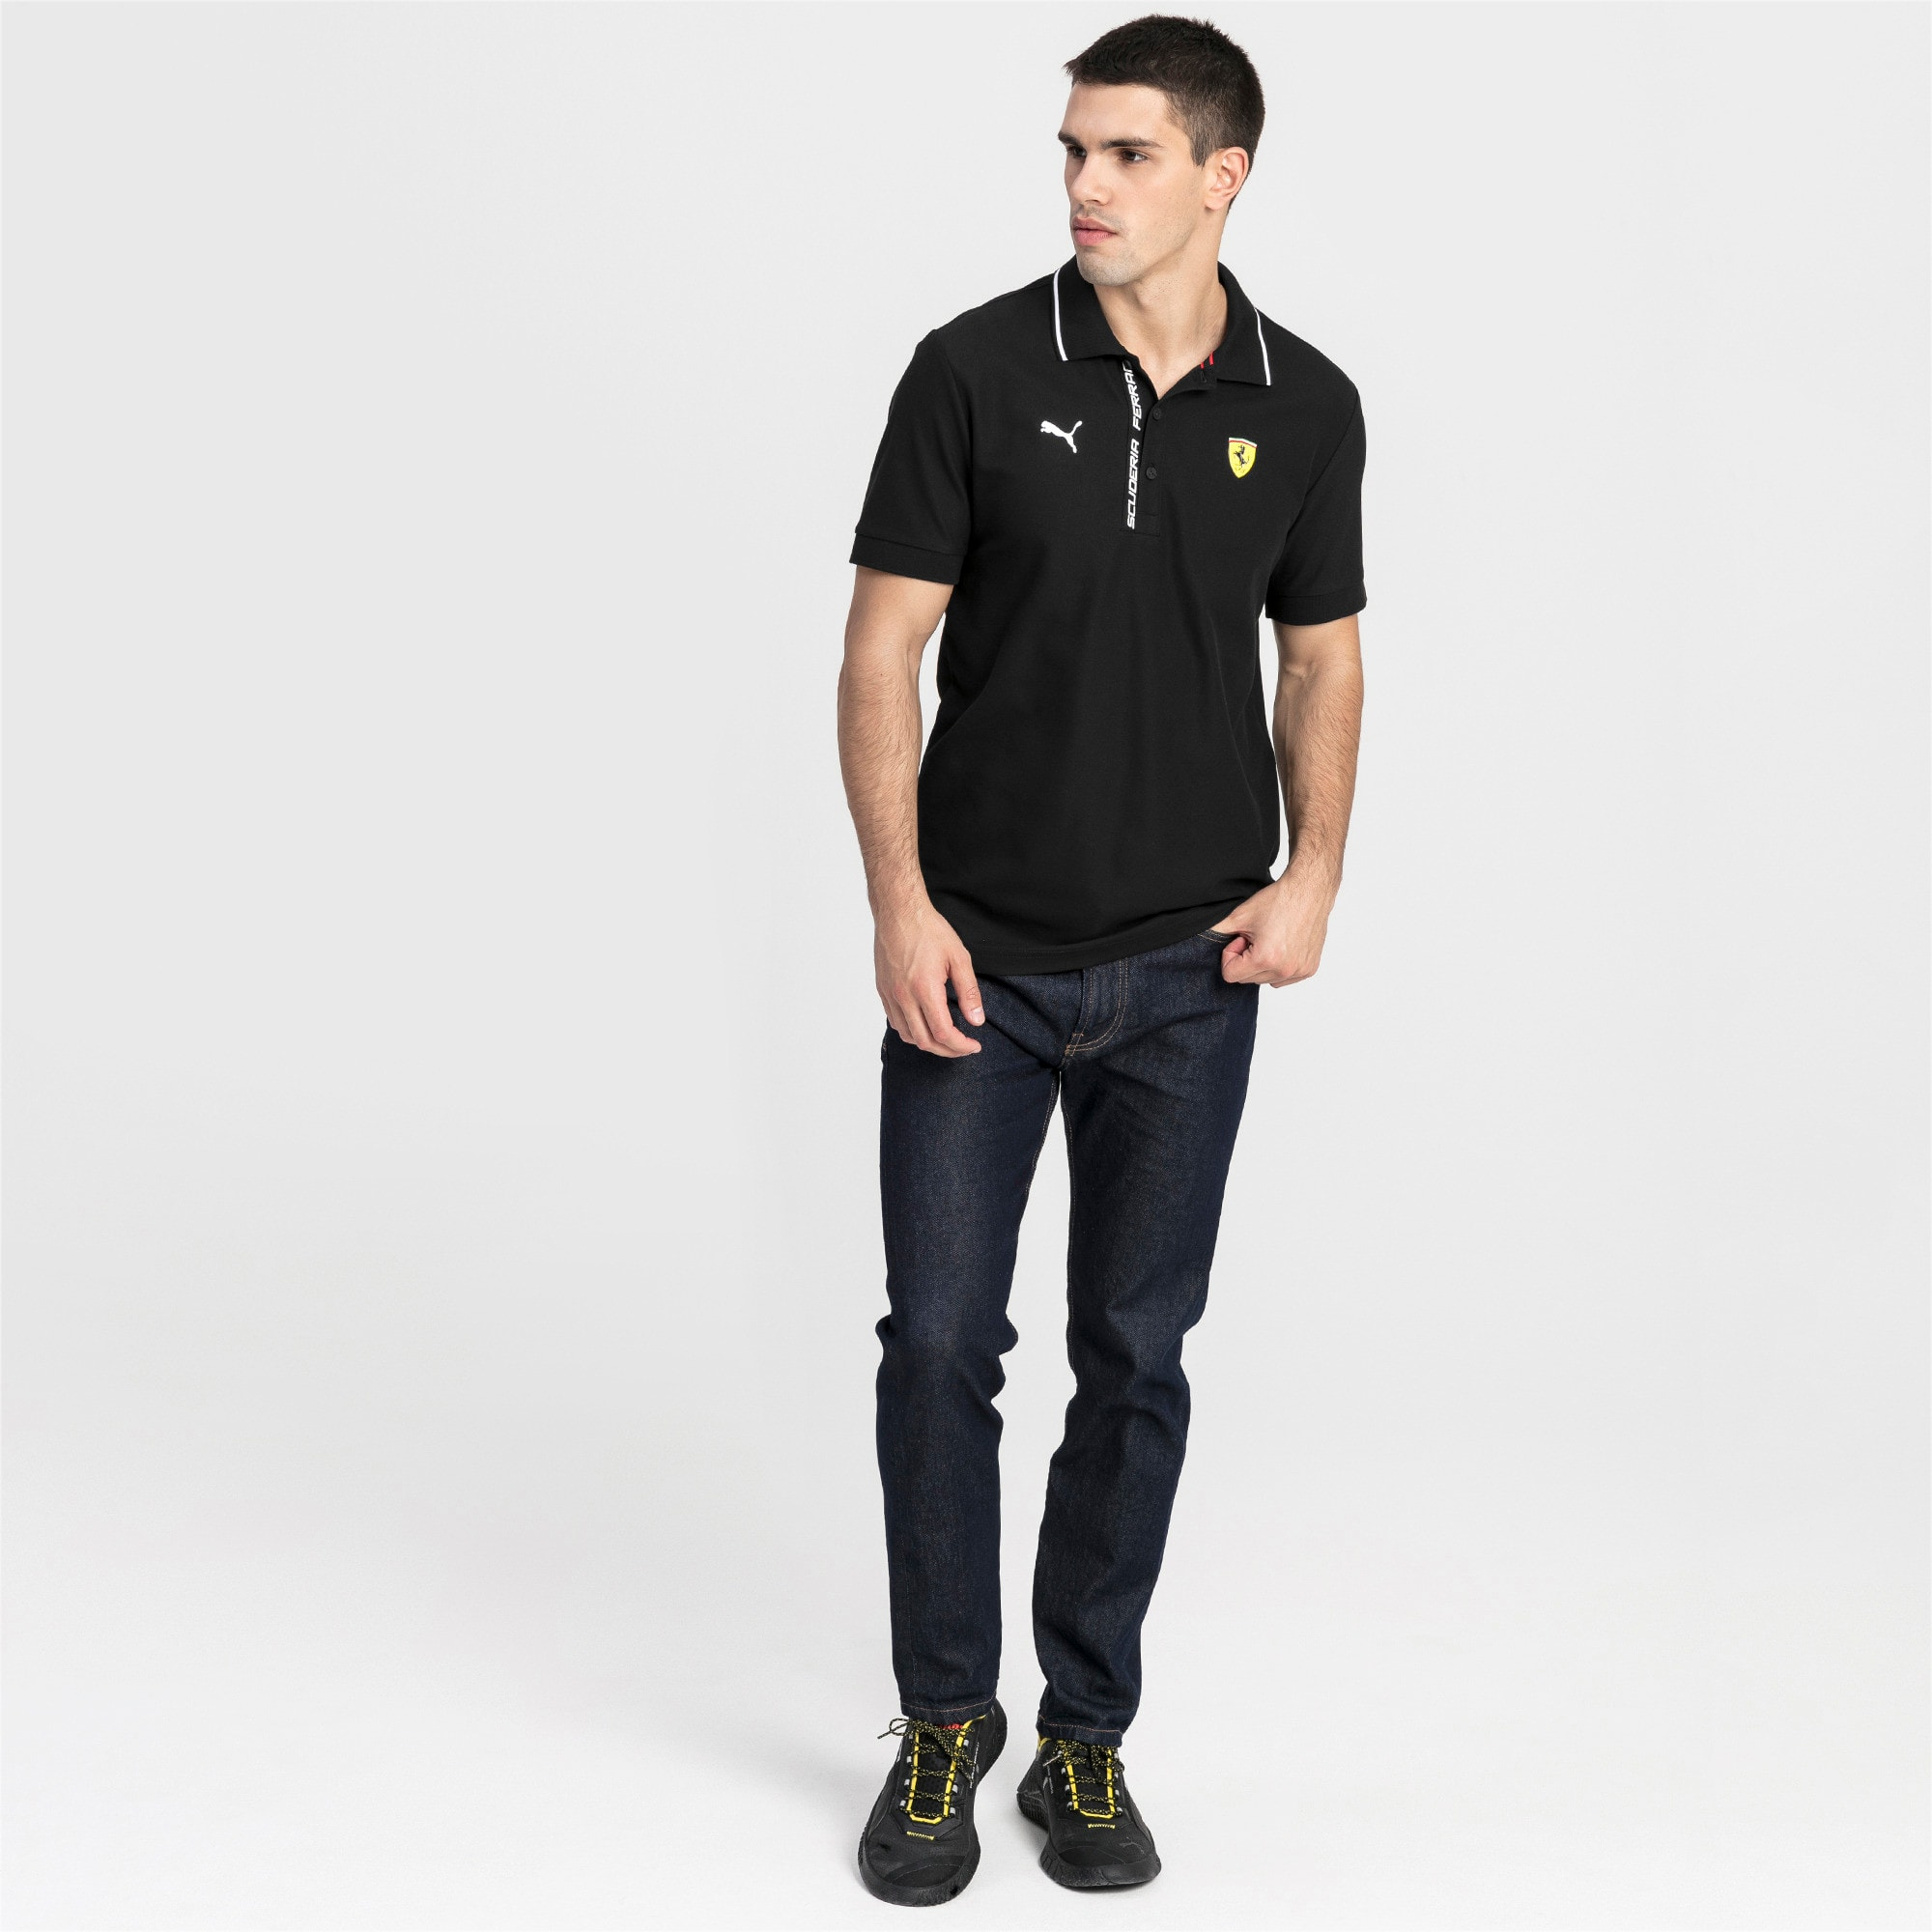 Thumbnail 3 of Ferrari Herren Polo, Puma Black, medium